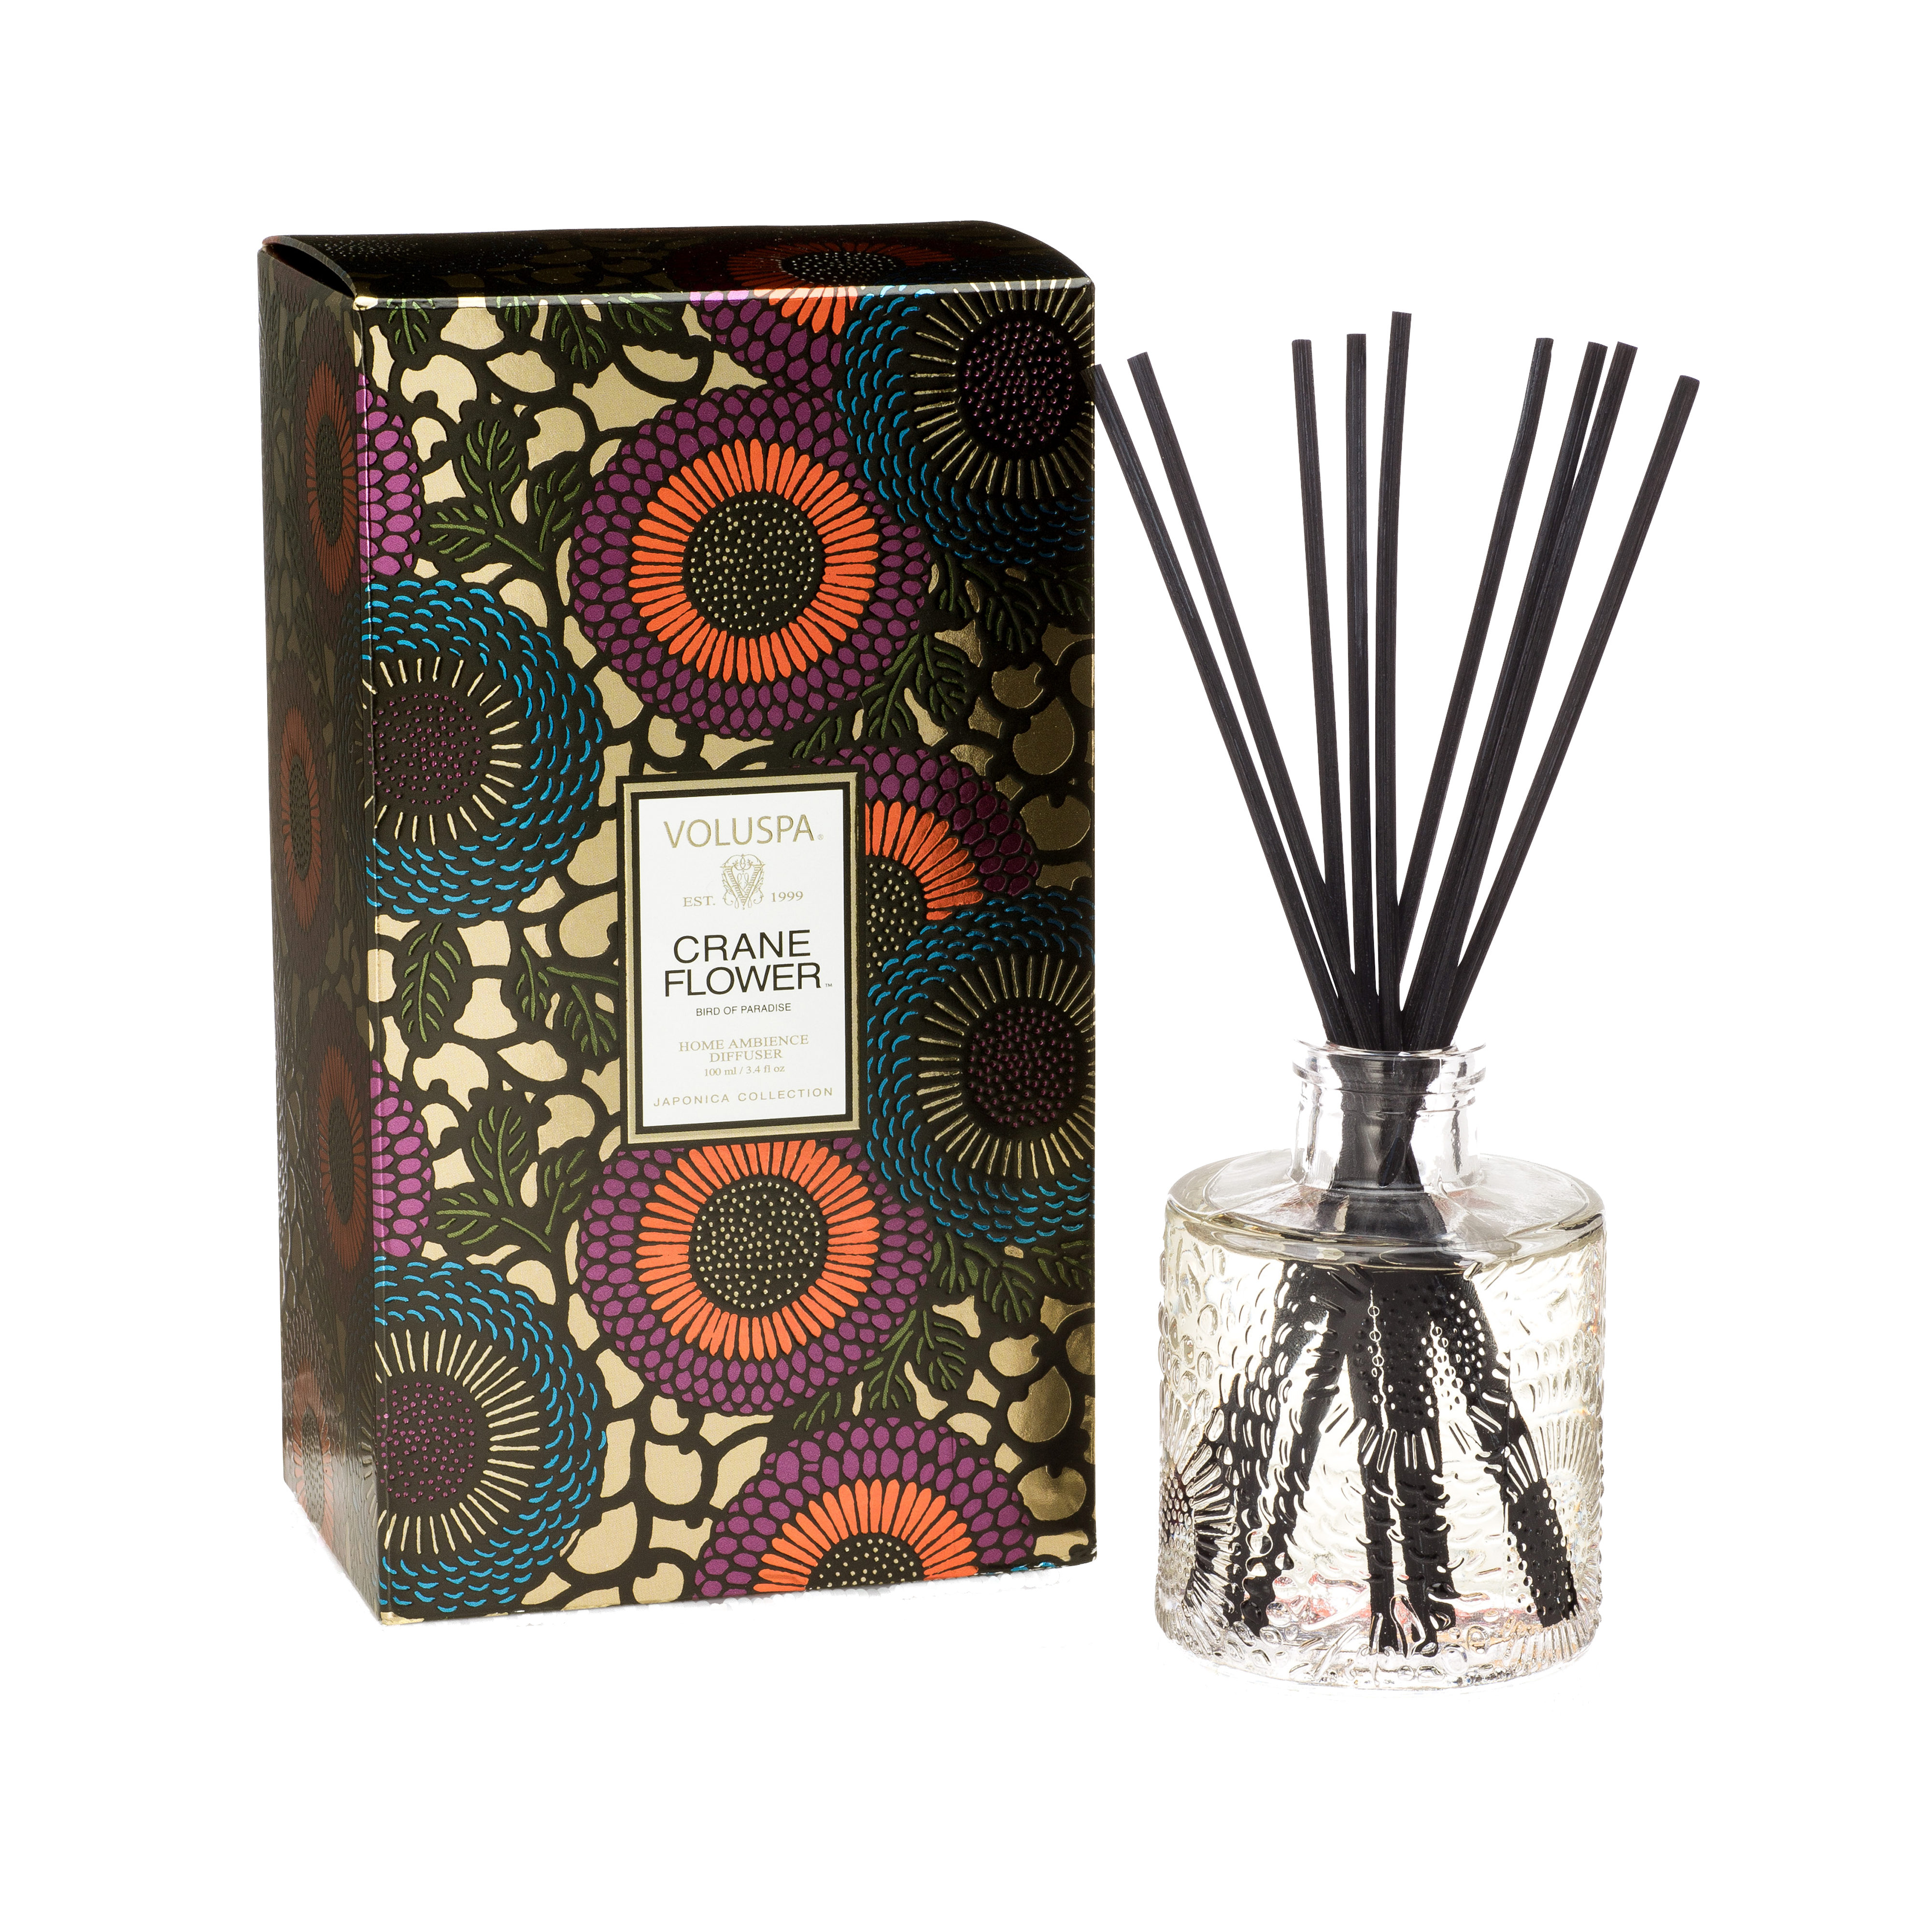 Crane Flower Reed Diffuser